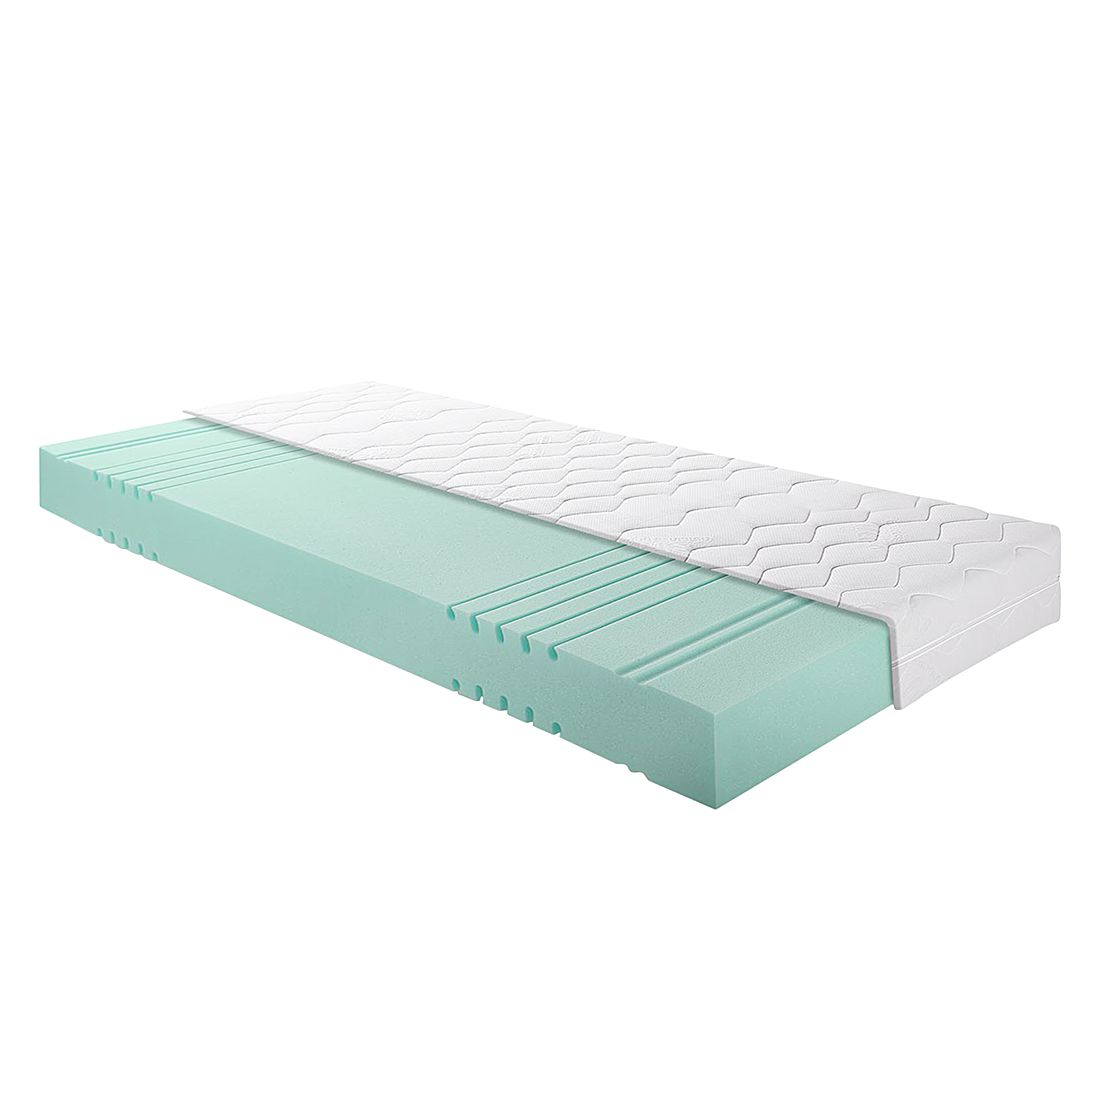 matelas en mousse froide 90 x 220cm d2 jusqu 39 80 kg breckle par breckle chez home24 fr. Black Bedroom Furniture Sets. Home Design Ideas